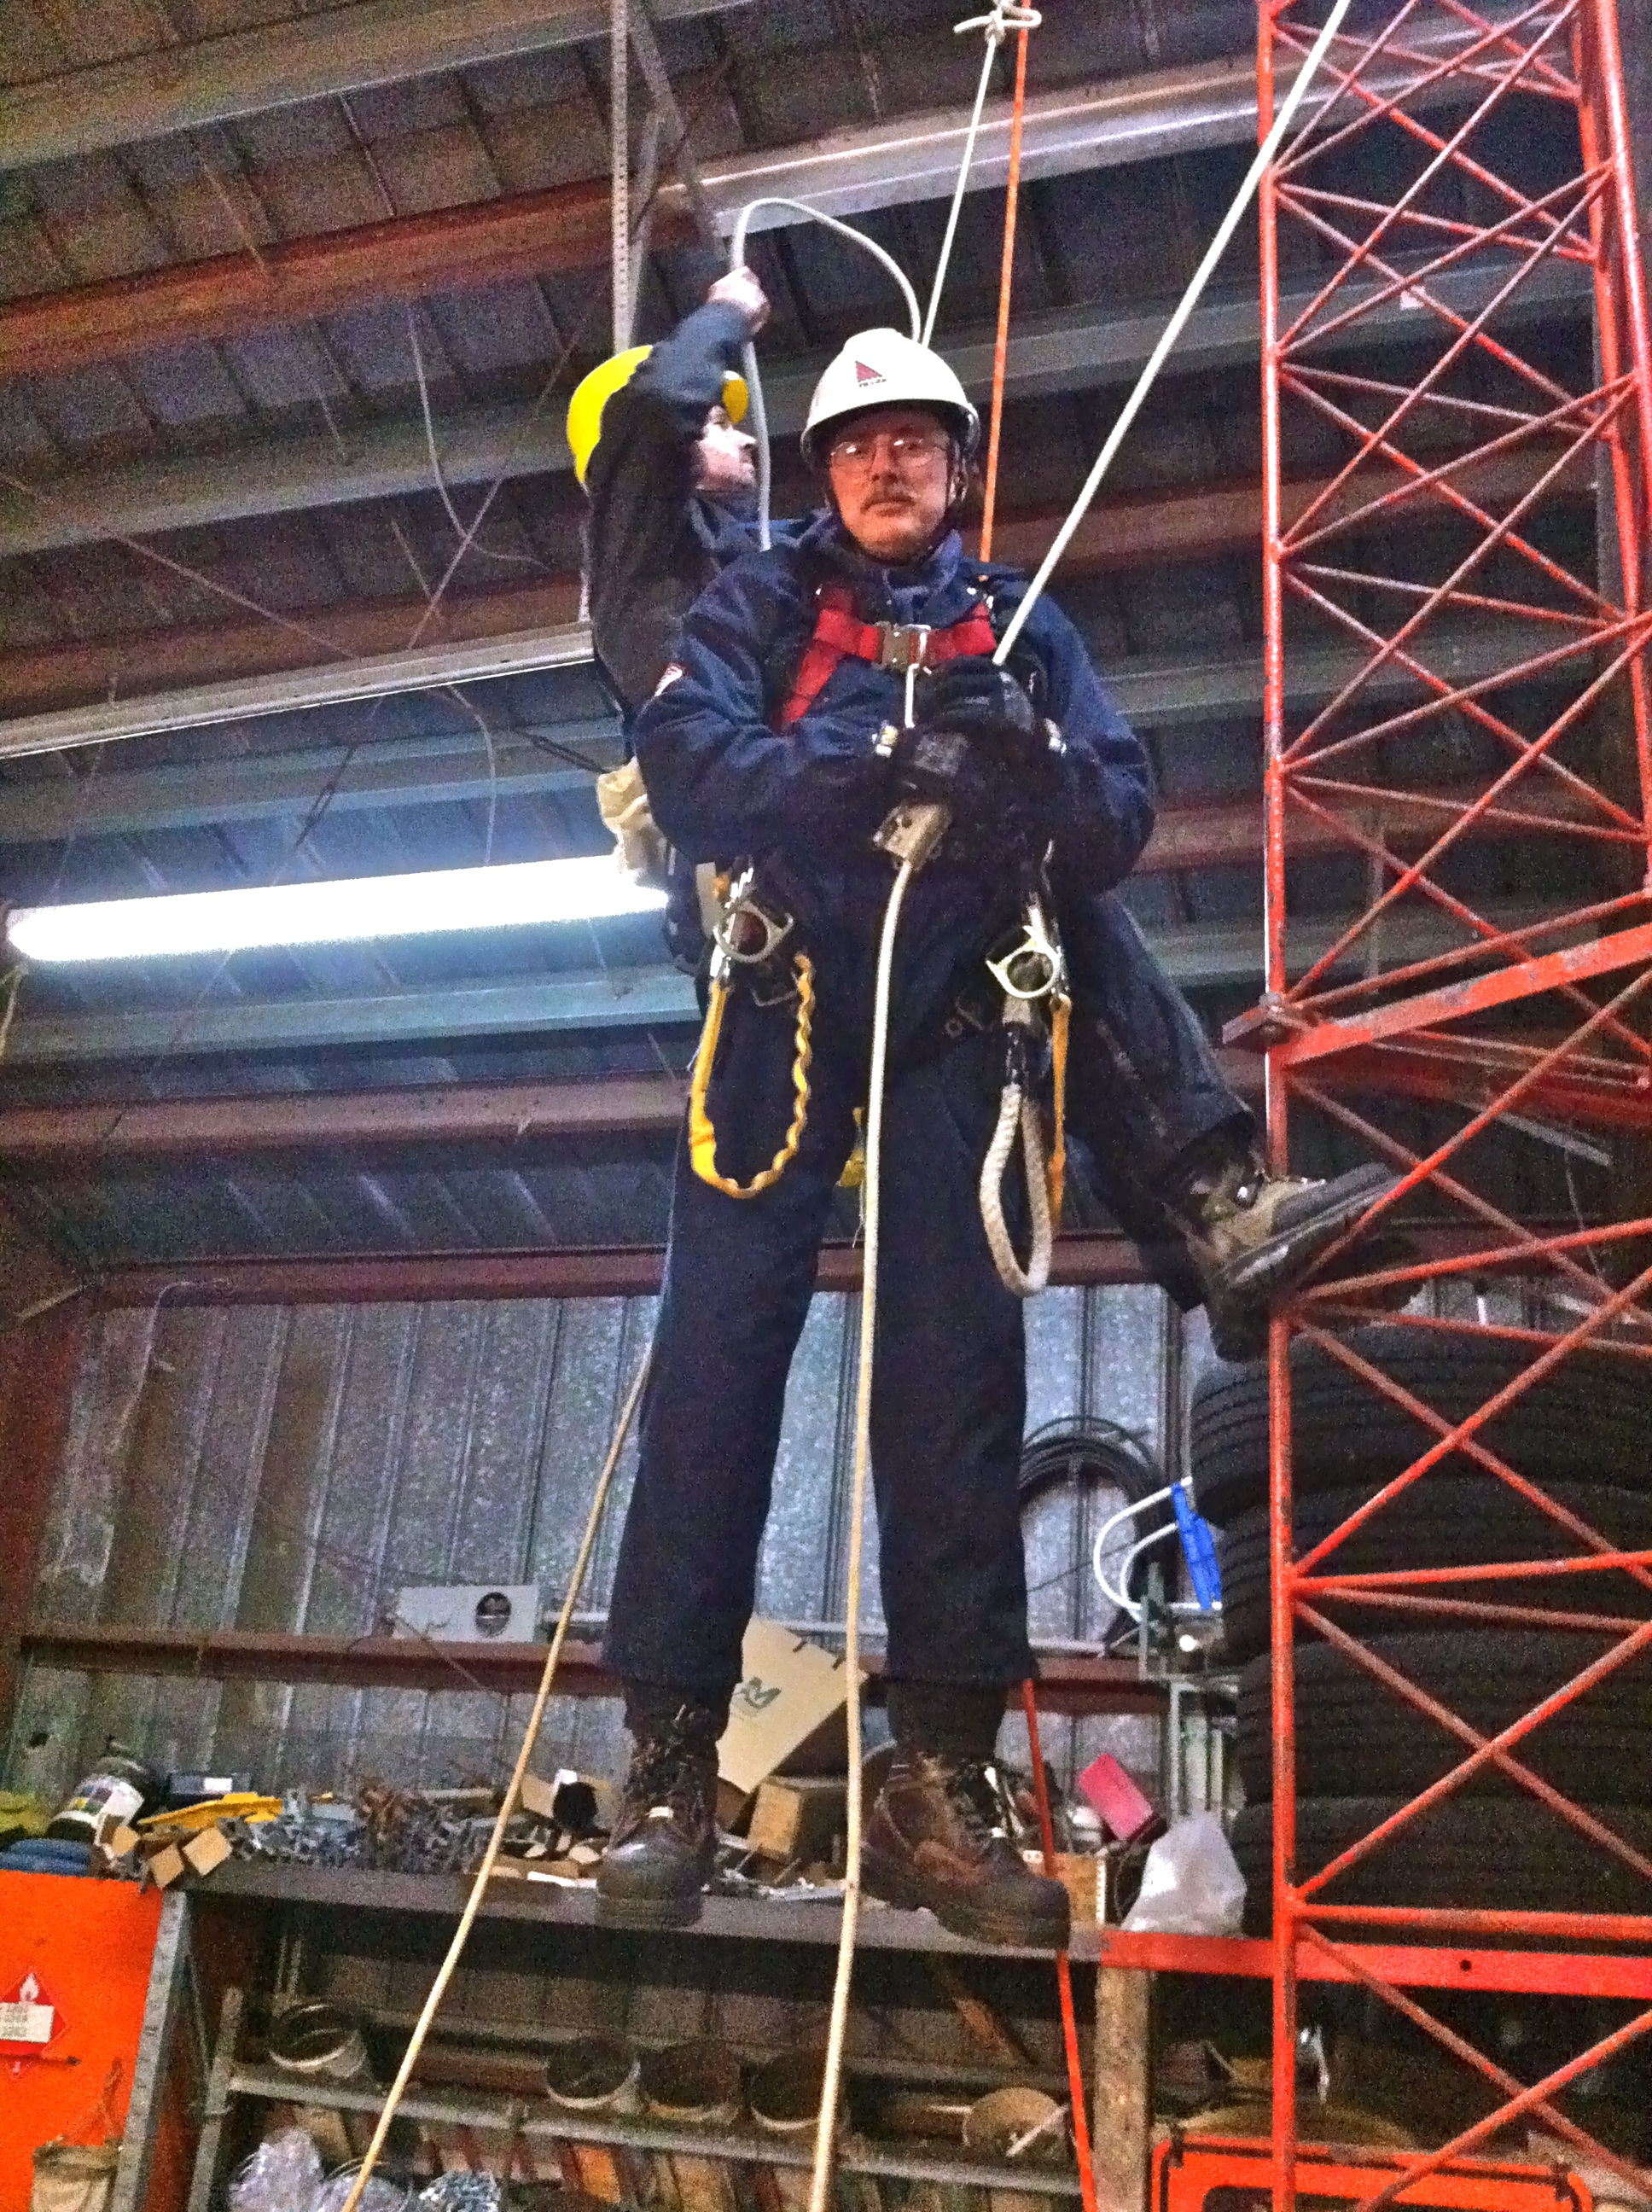 Tiller Fall Protection Trainer Approved by WHSCC